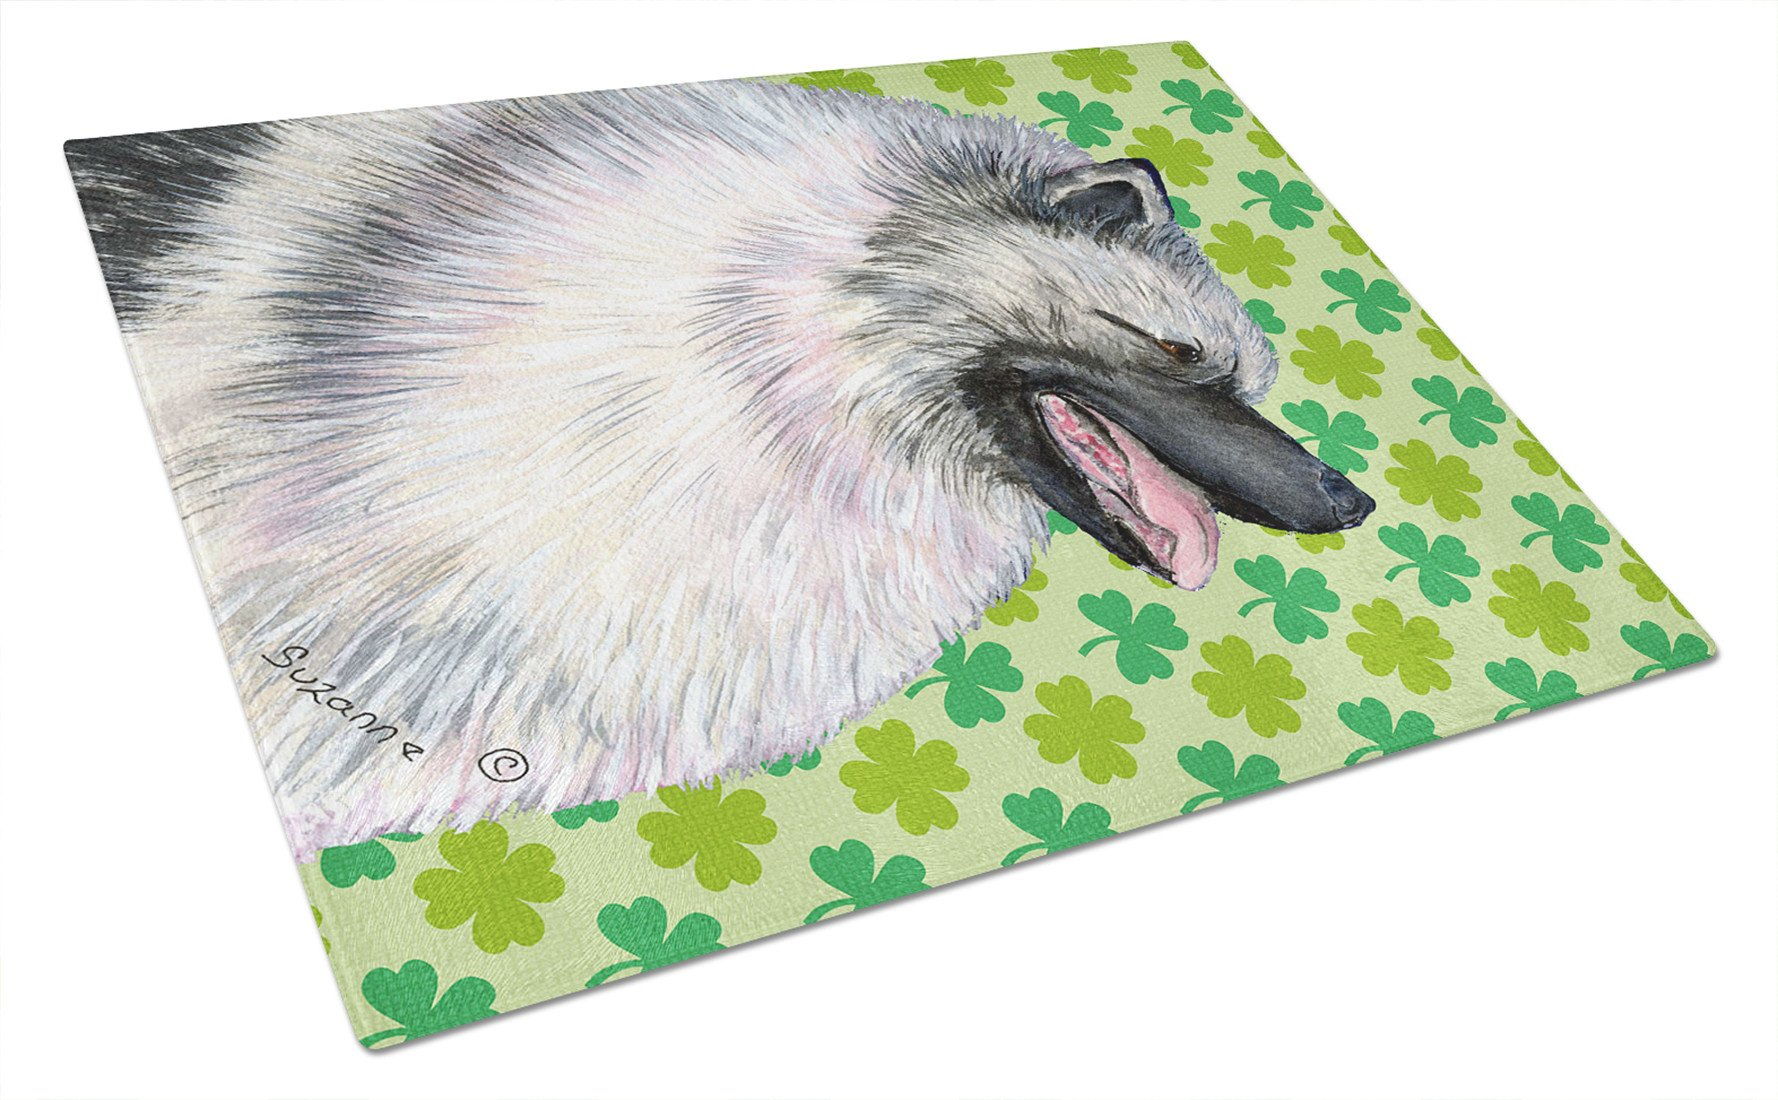 Keeshond St. Patrick's Day Shamrock Portrait Glass Cutting Board Large by Caroline's Treasures